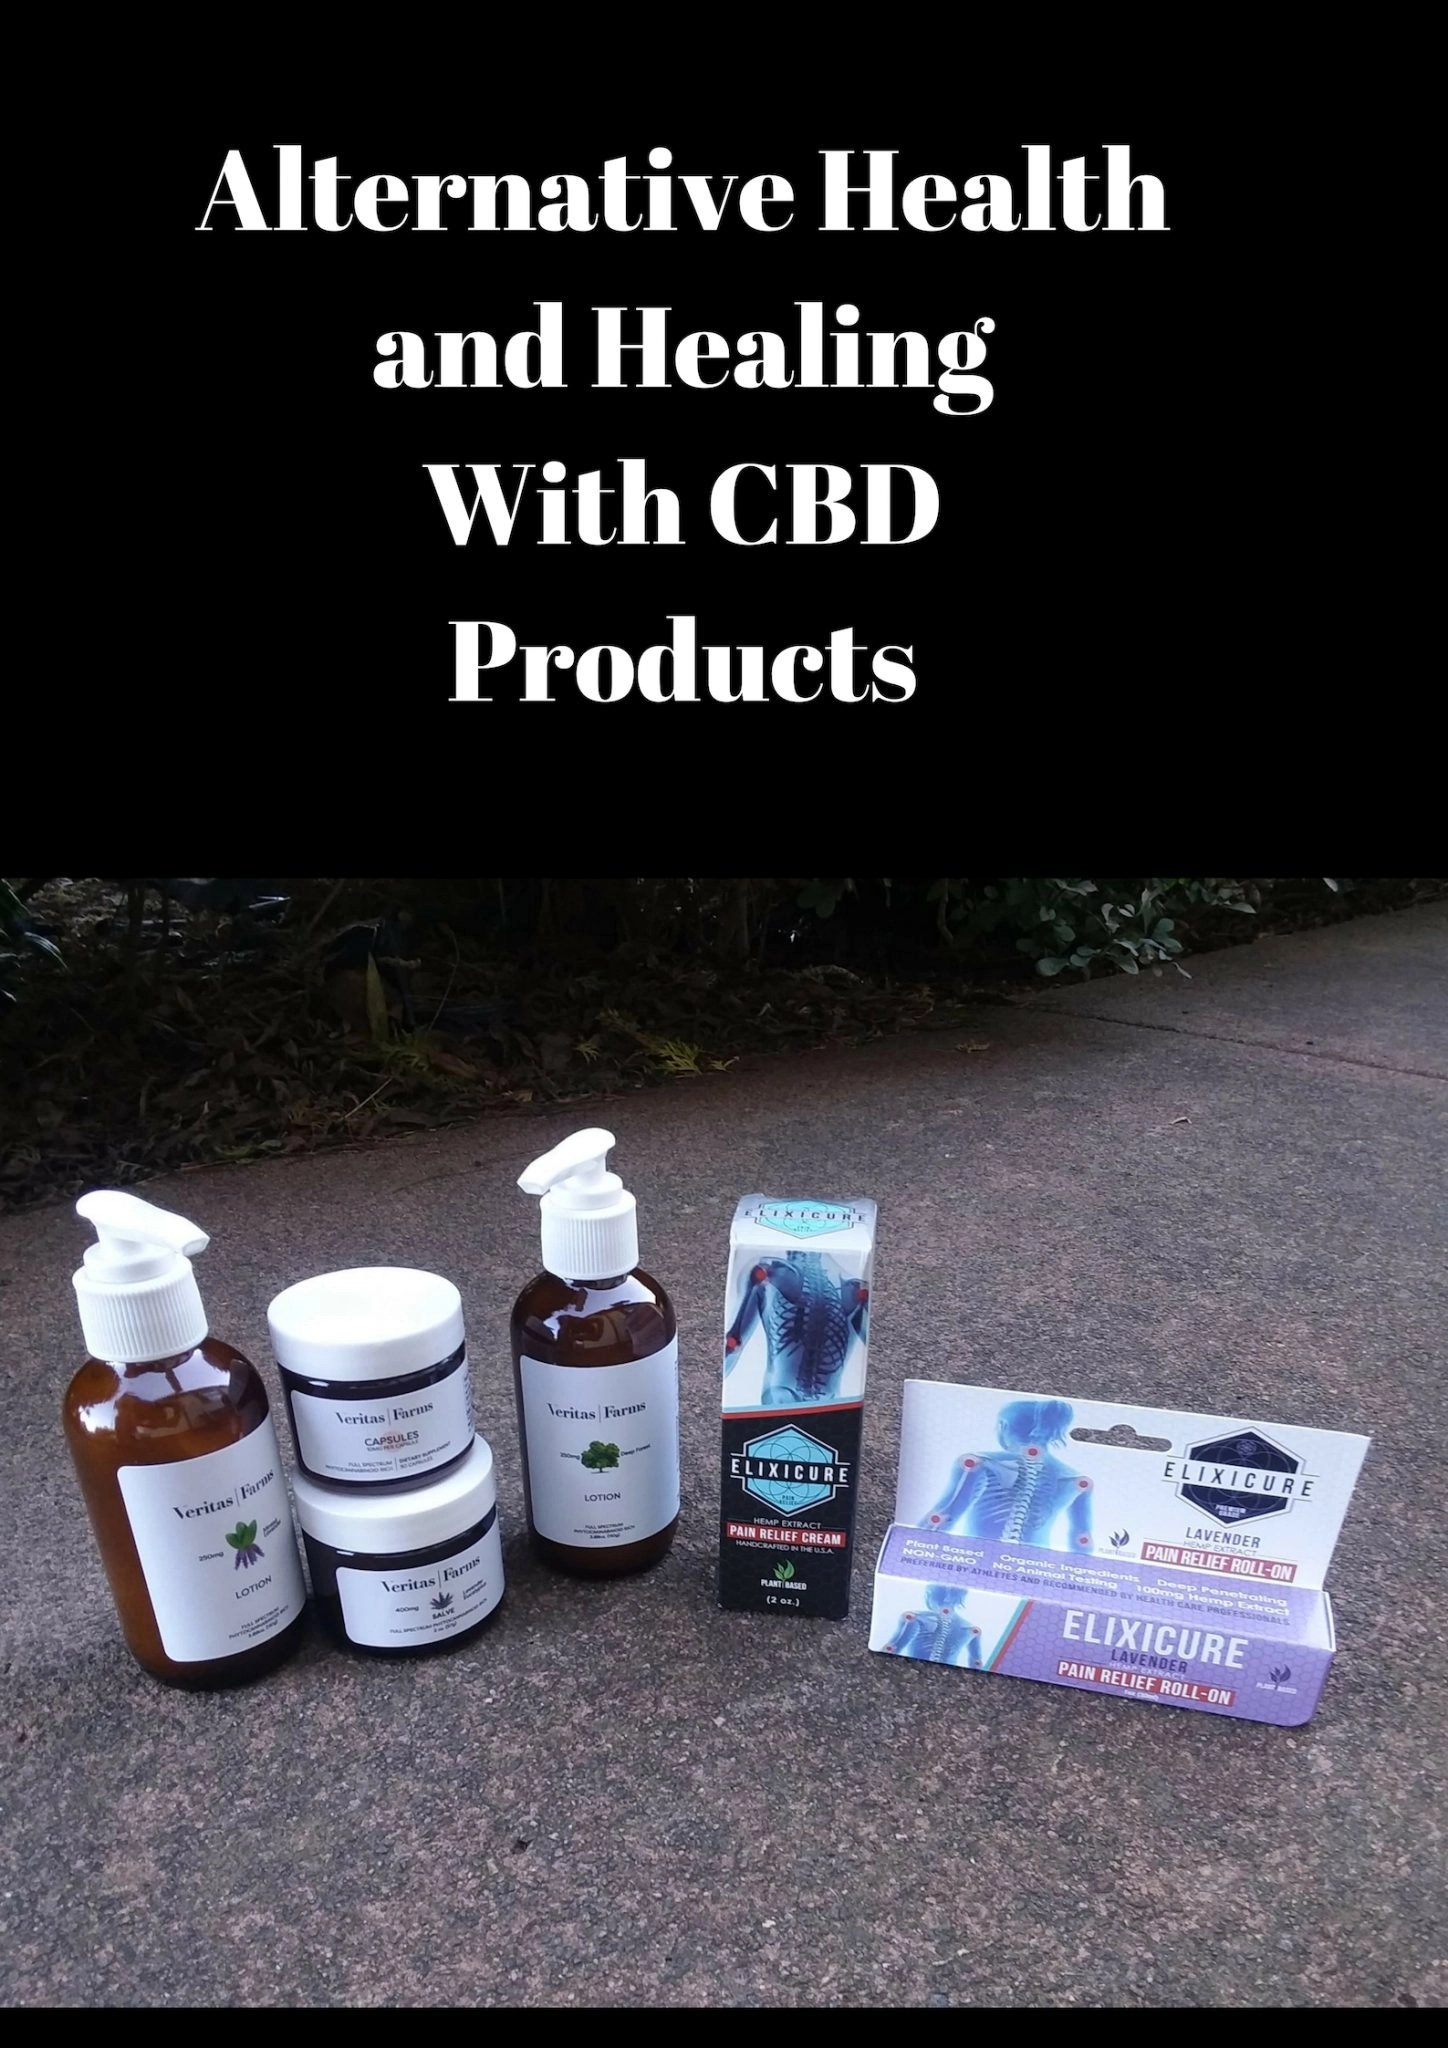 Alternative Health and Healing With CBD Products